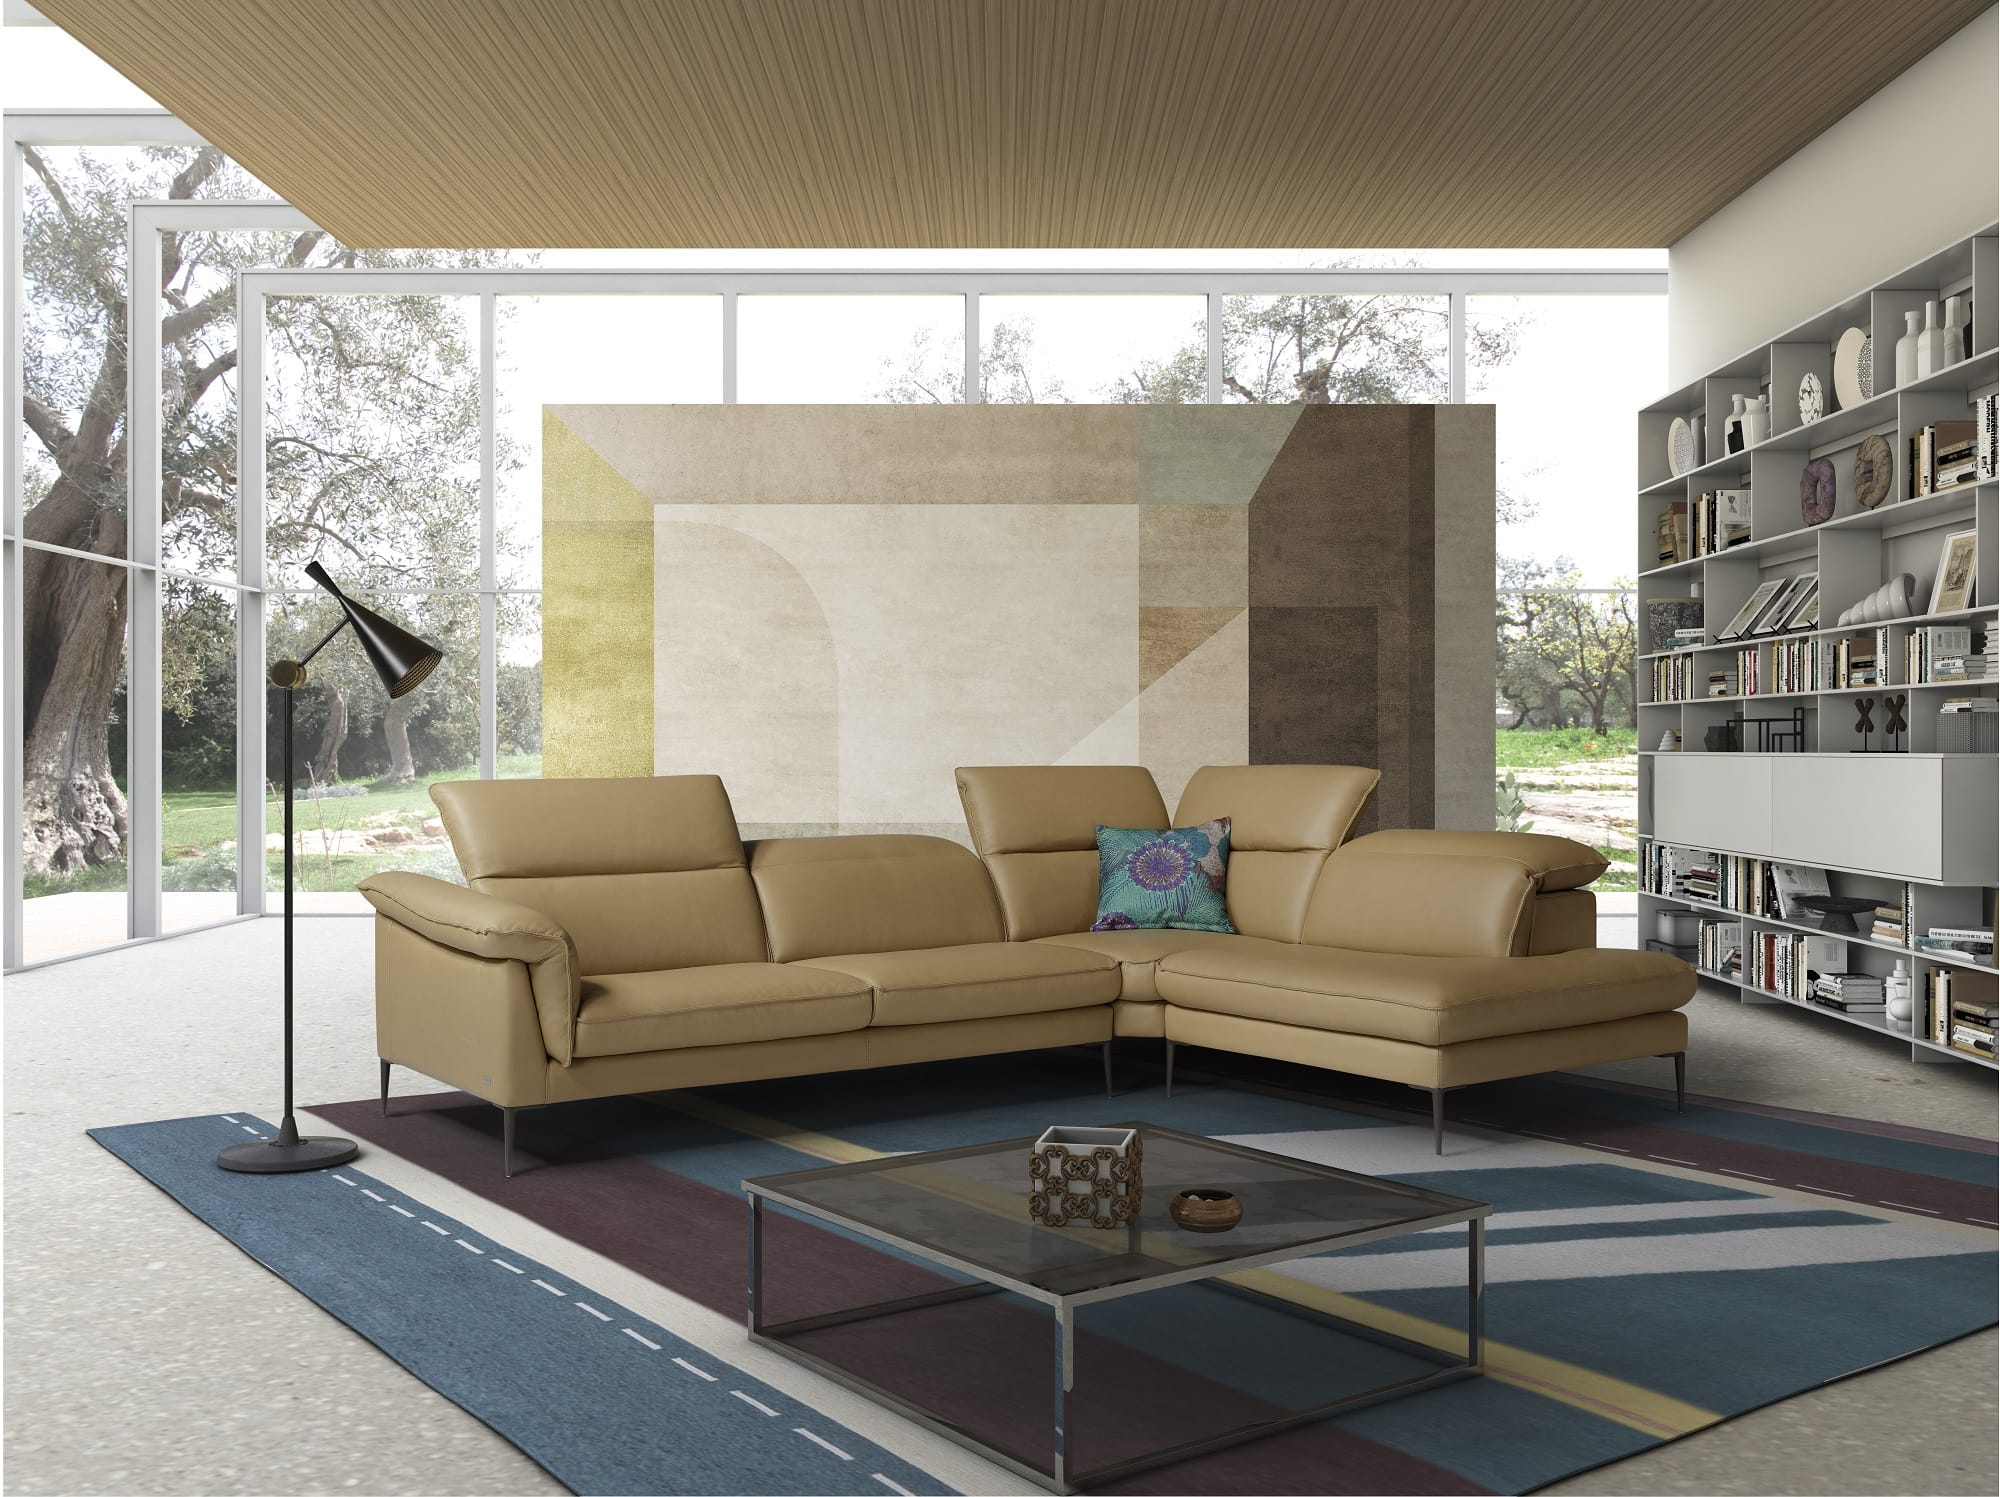 Fine Eden Premium Leather Sectional Yellow By Jm Furniture Ocoug Best Dining Table And Chair Ideas Images Ocougorg